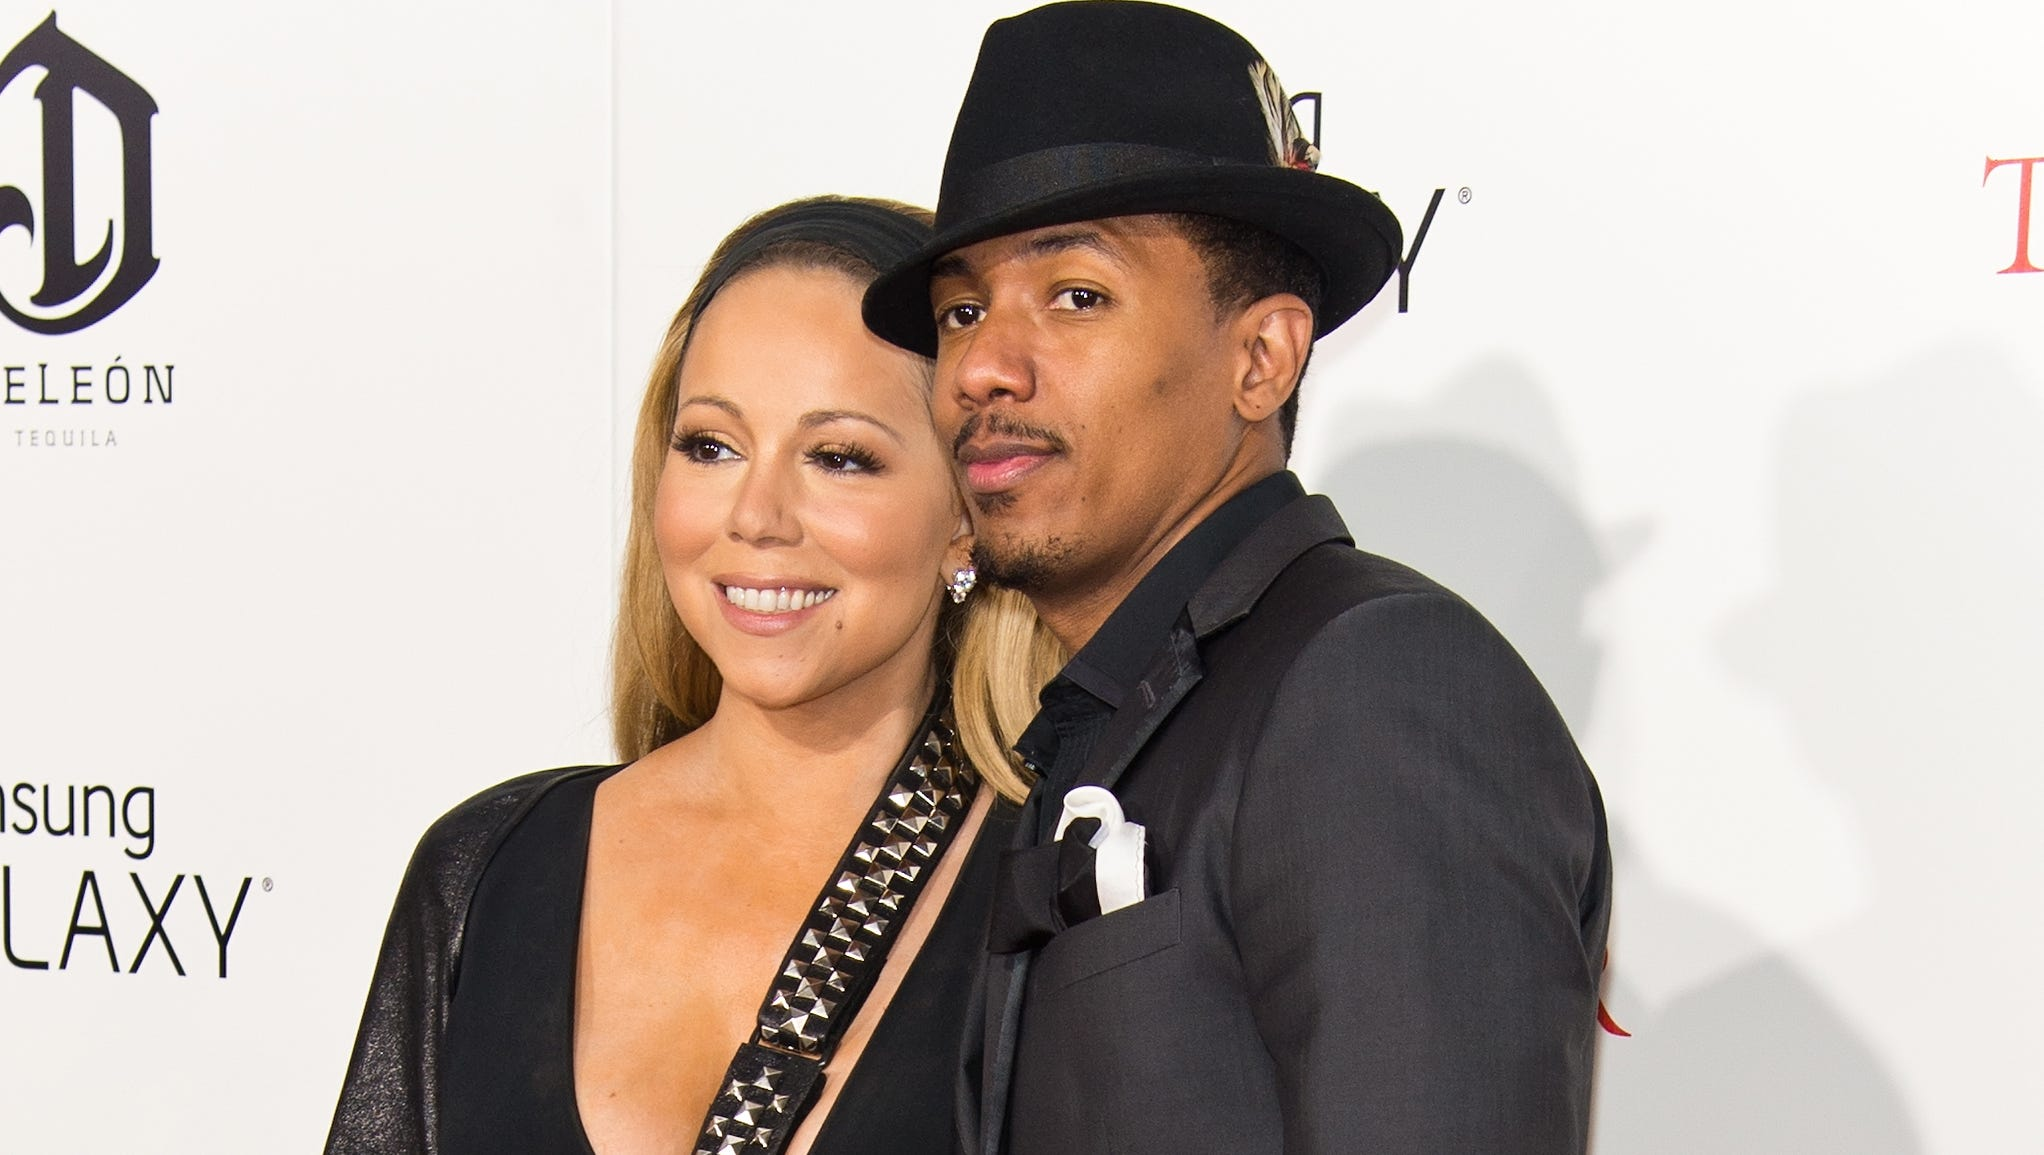 """Carey showed off her black studded sling with husband Nick Cannon by her side on Aug. 5. The couple spent their date night at 'The Butler' premiere in NYC. Cannon actually directed the video shoot where Carey was injured. """"It was pretty serious,"""" Cannon said on the 'Today' show. """"Not only did she dislocate her shoulder, she actually cracked a rib and ... she chipped her shoulder bone."""""""